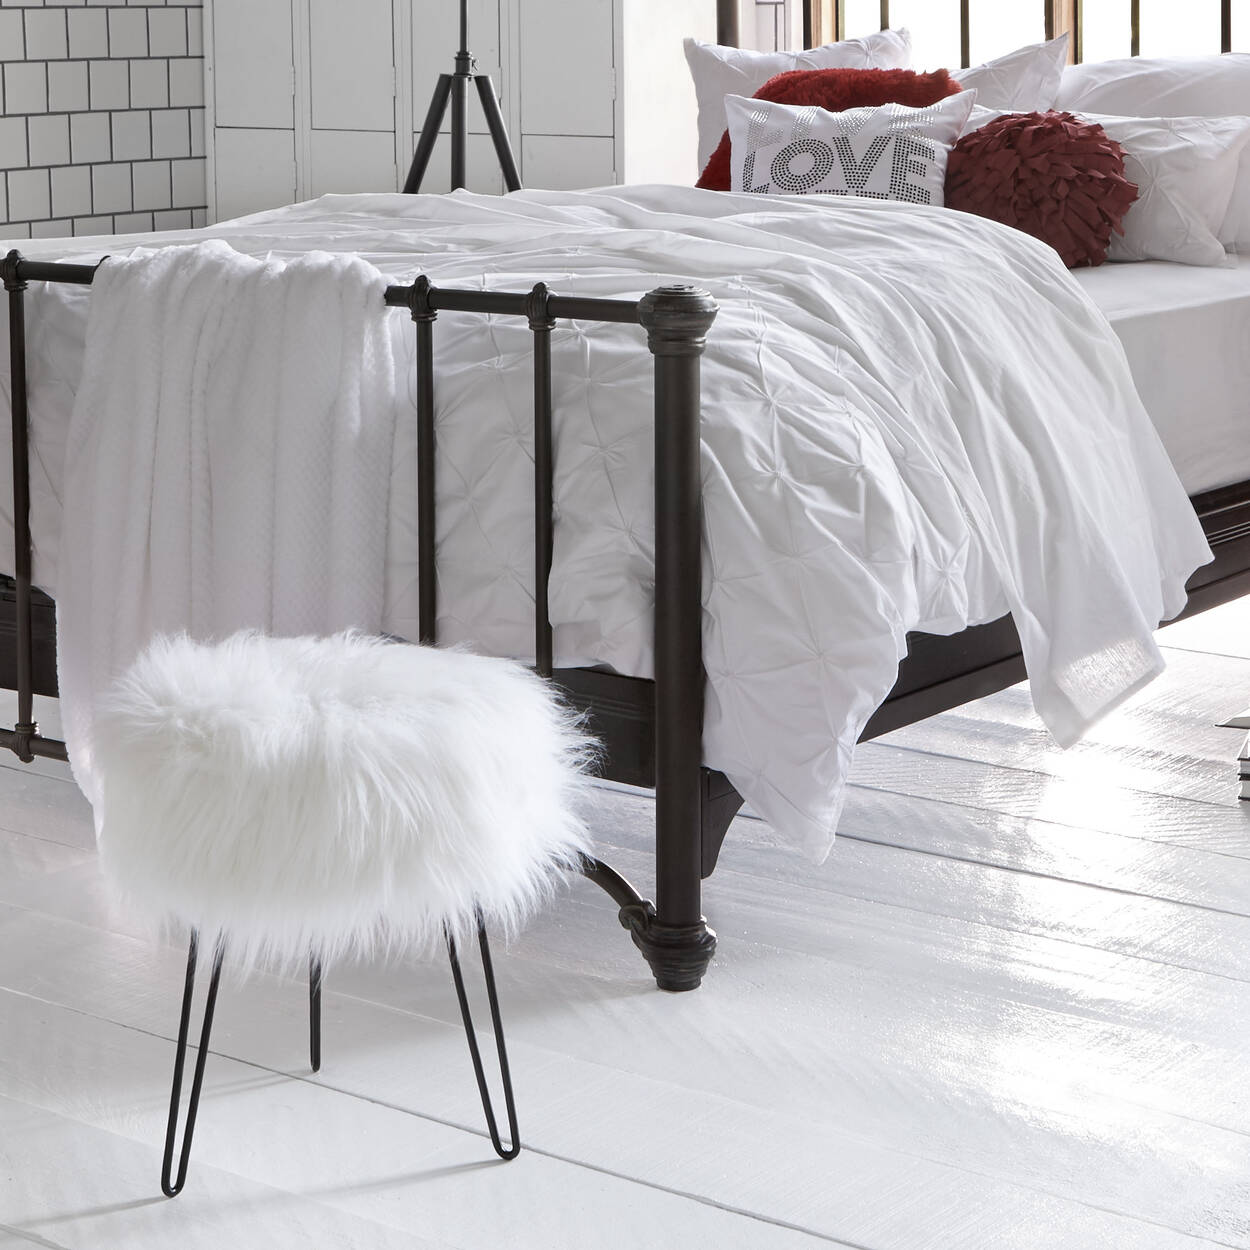 tabouret en fausse fourrure. Black Bedroom Furniture Sets. Home Design Ideas